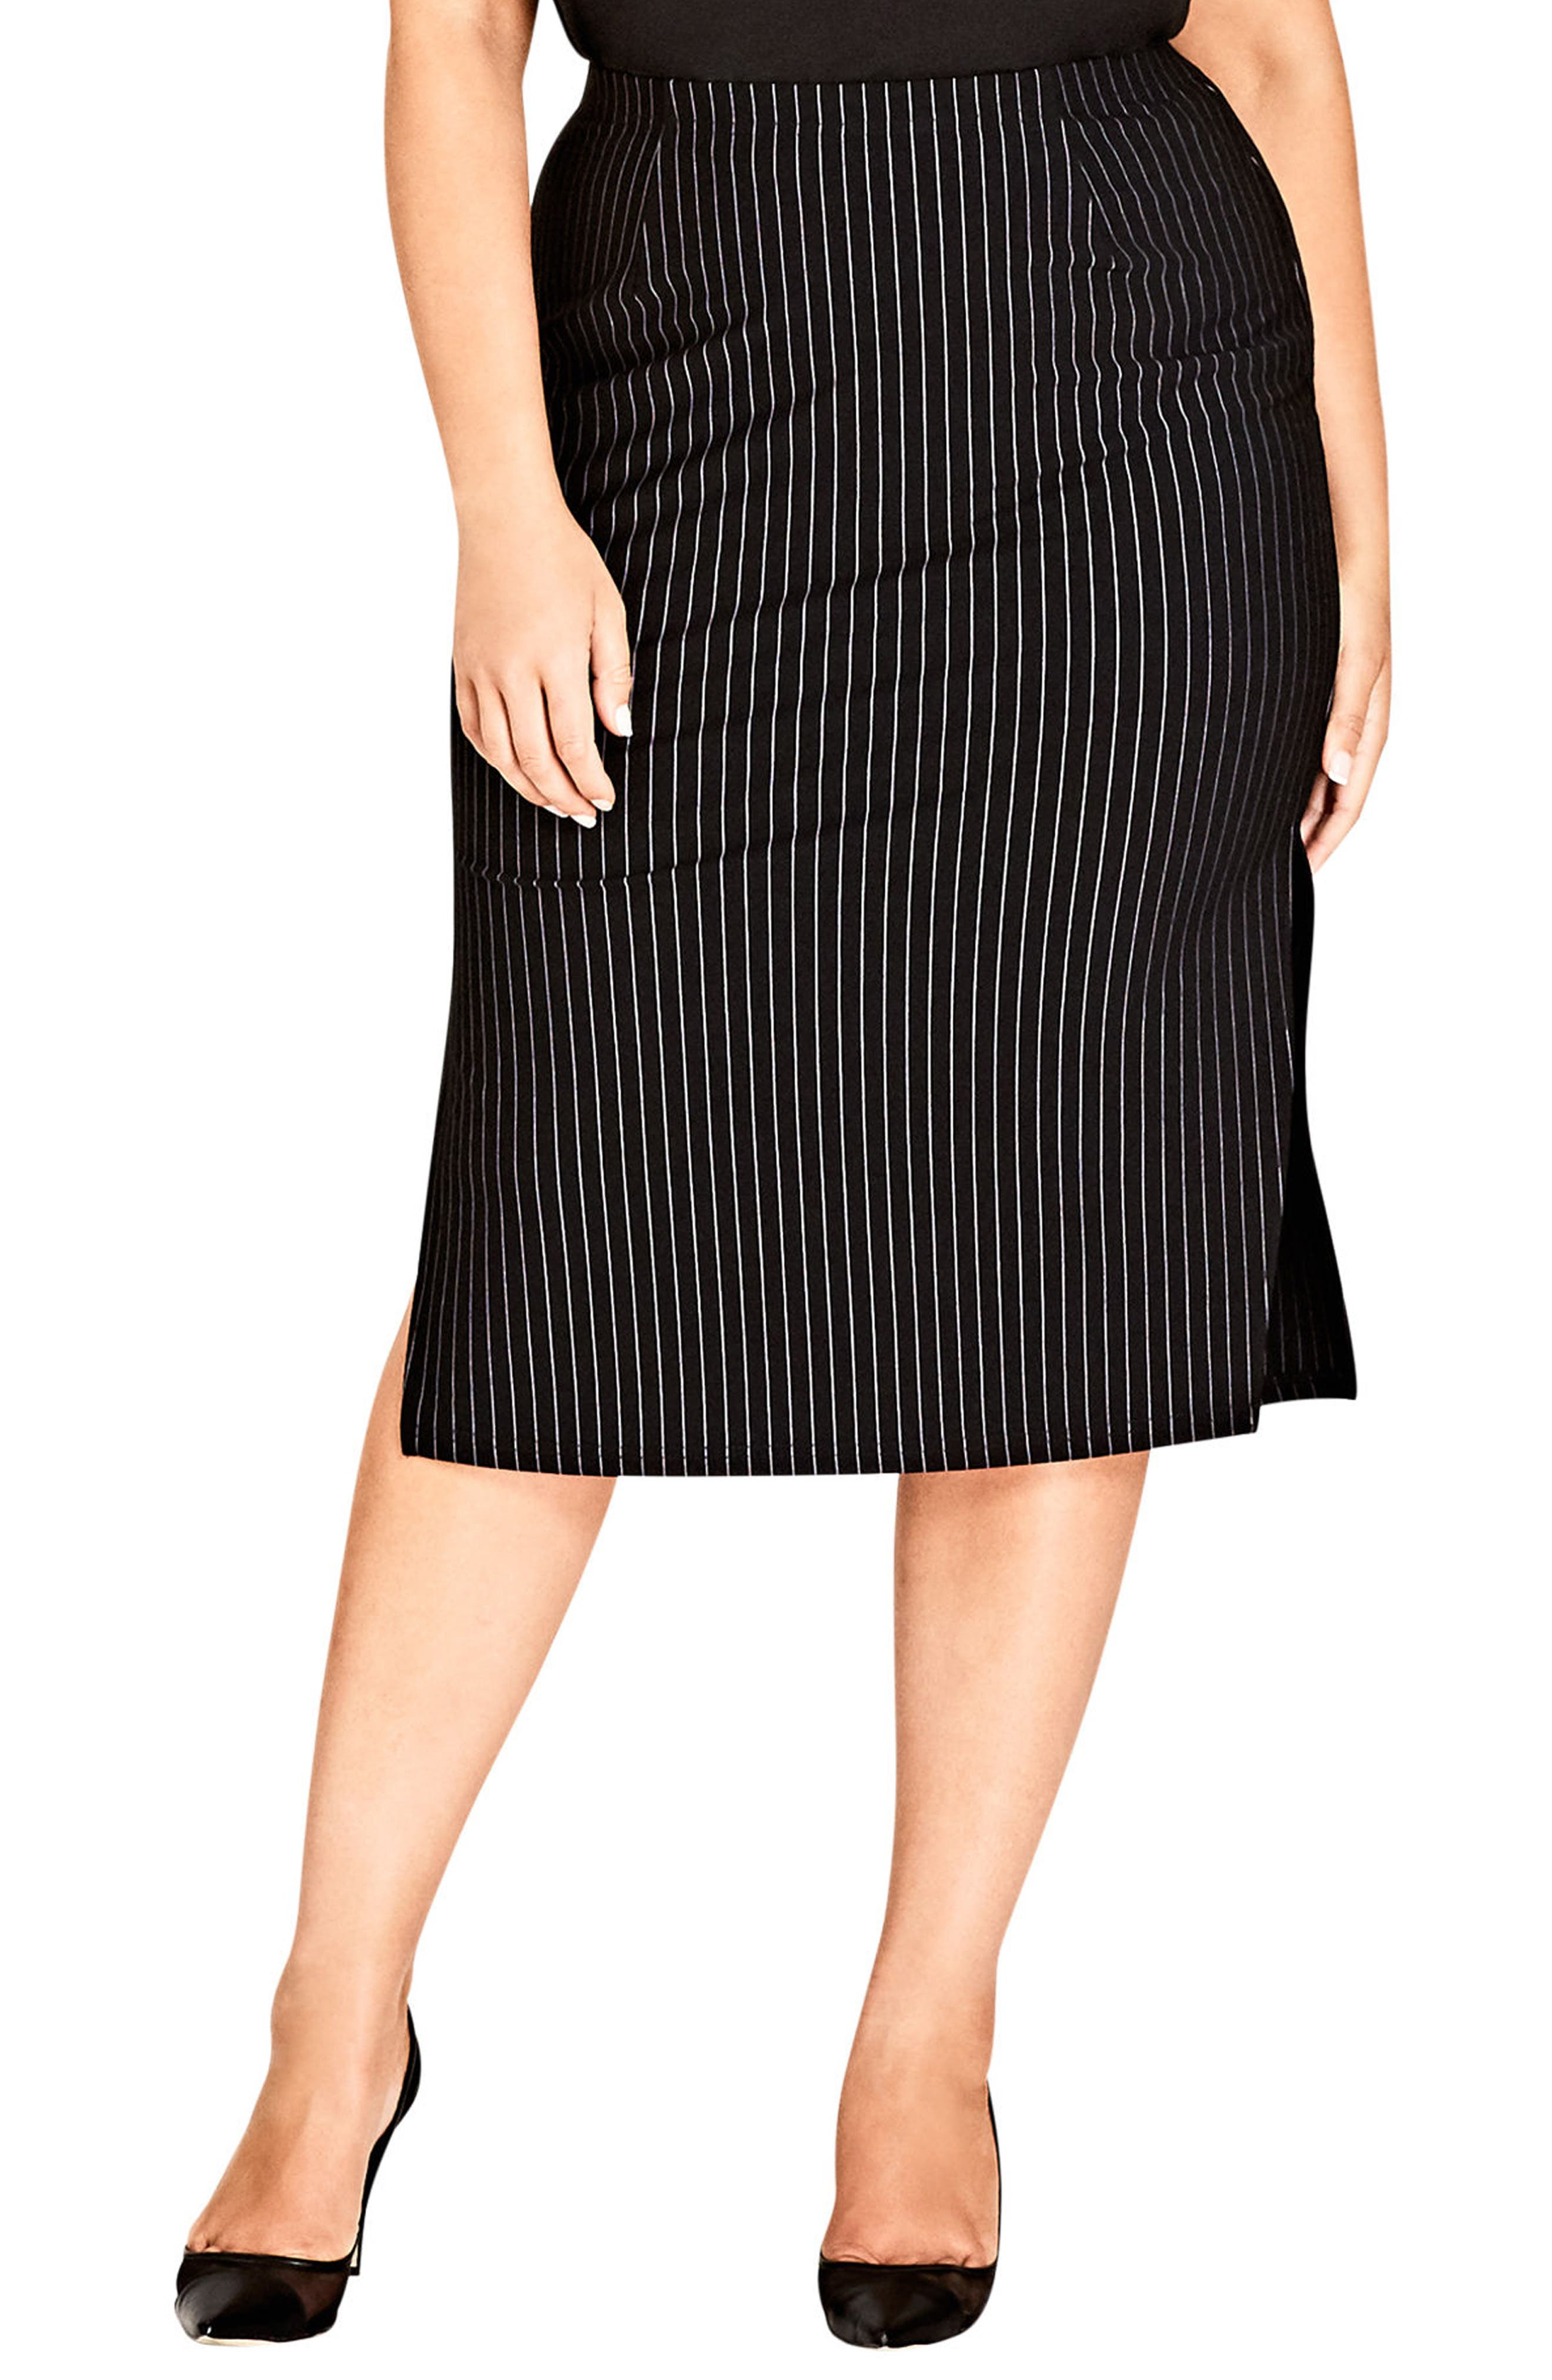 Chic City On Point Pencil skirt,                             Main thumbnail 1, color,